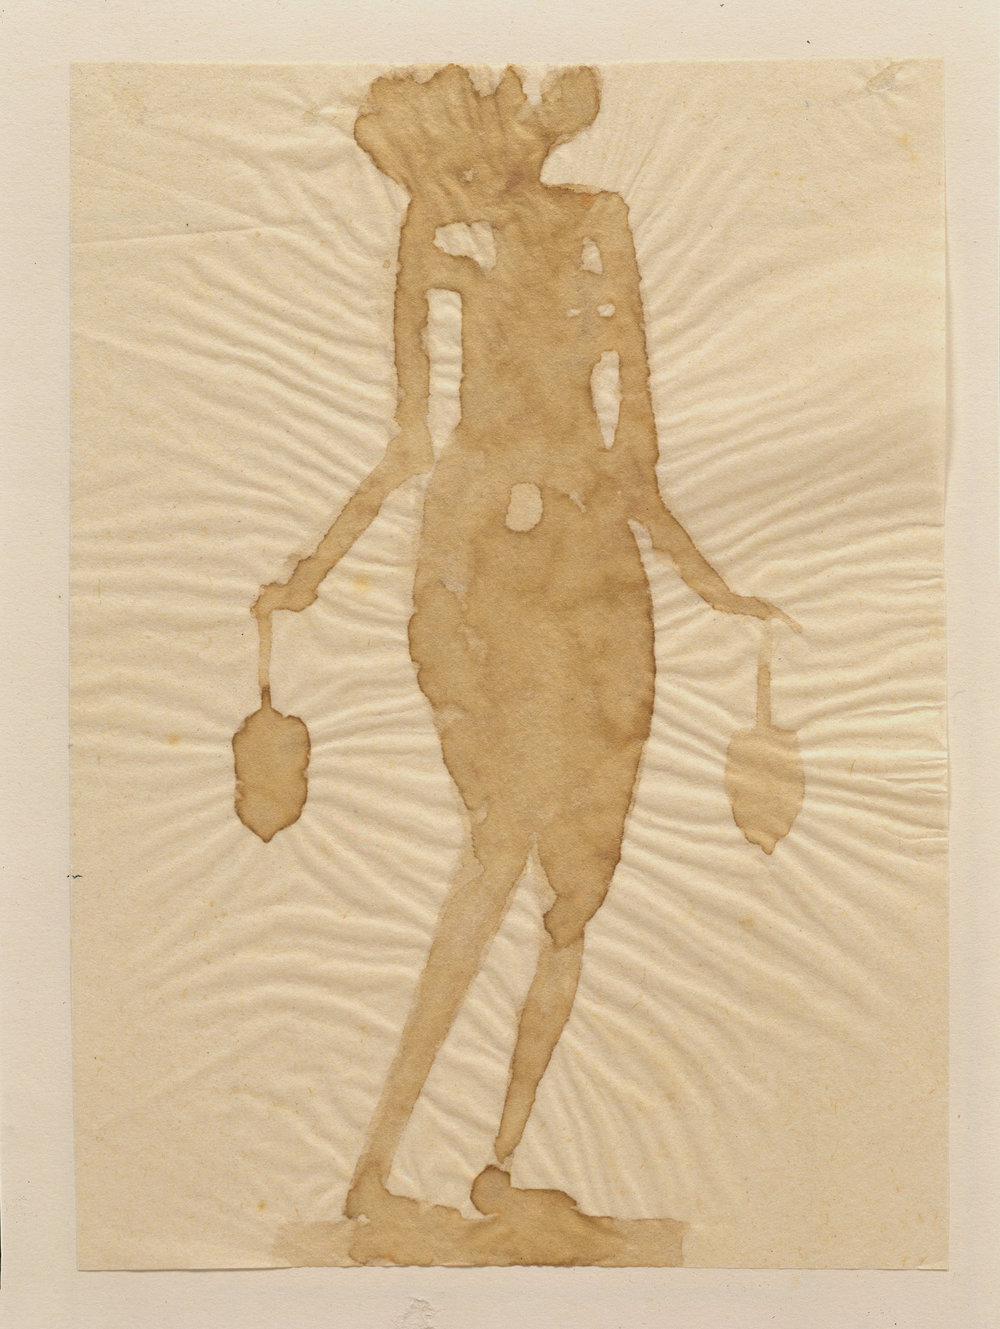 Joseph Beuys, Flower Nymph, 1956